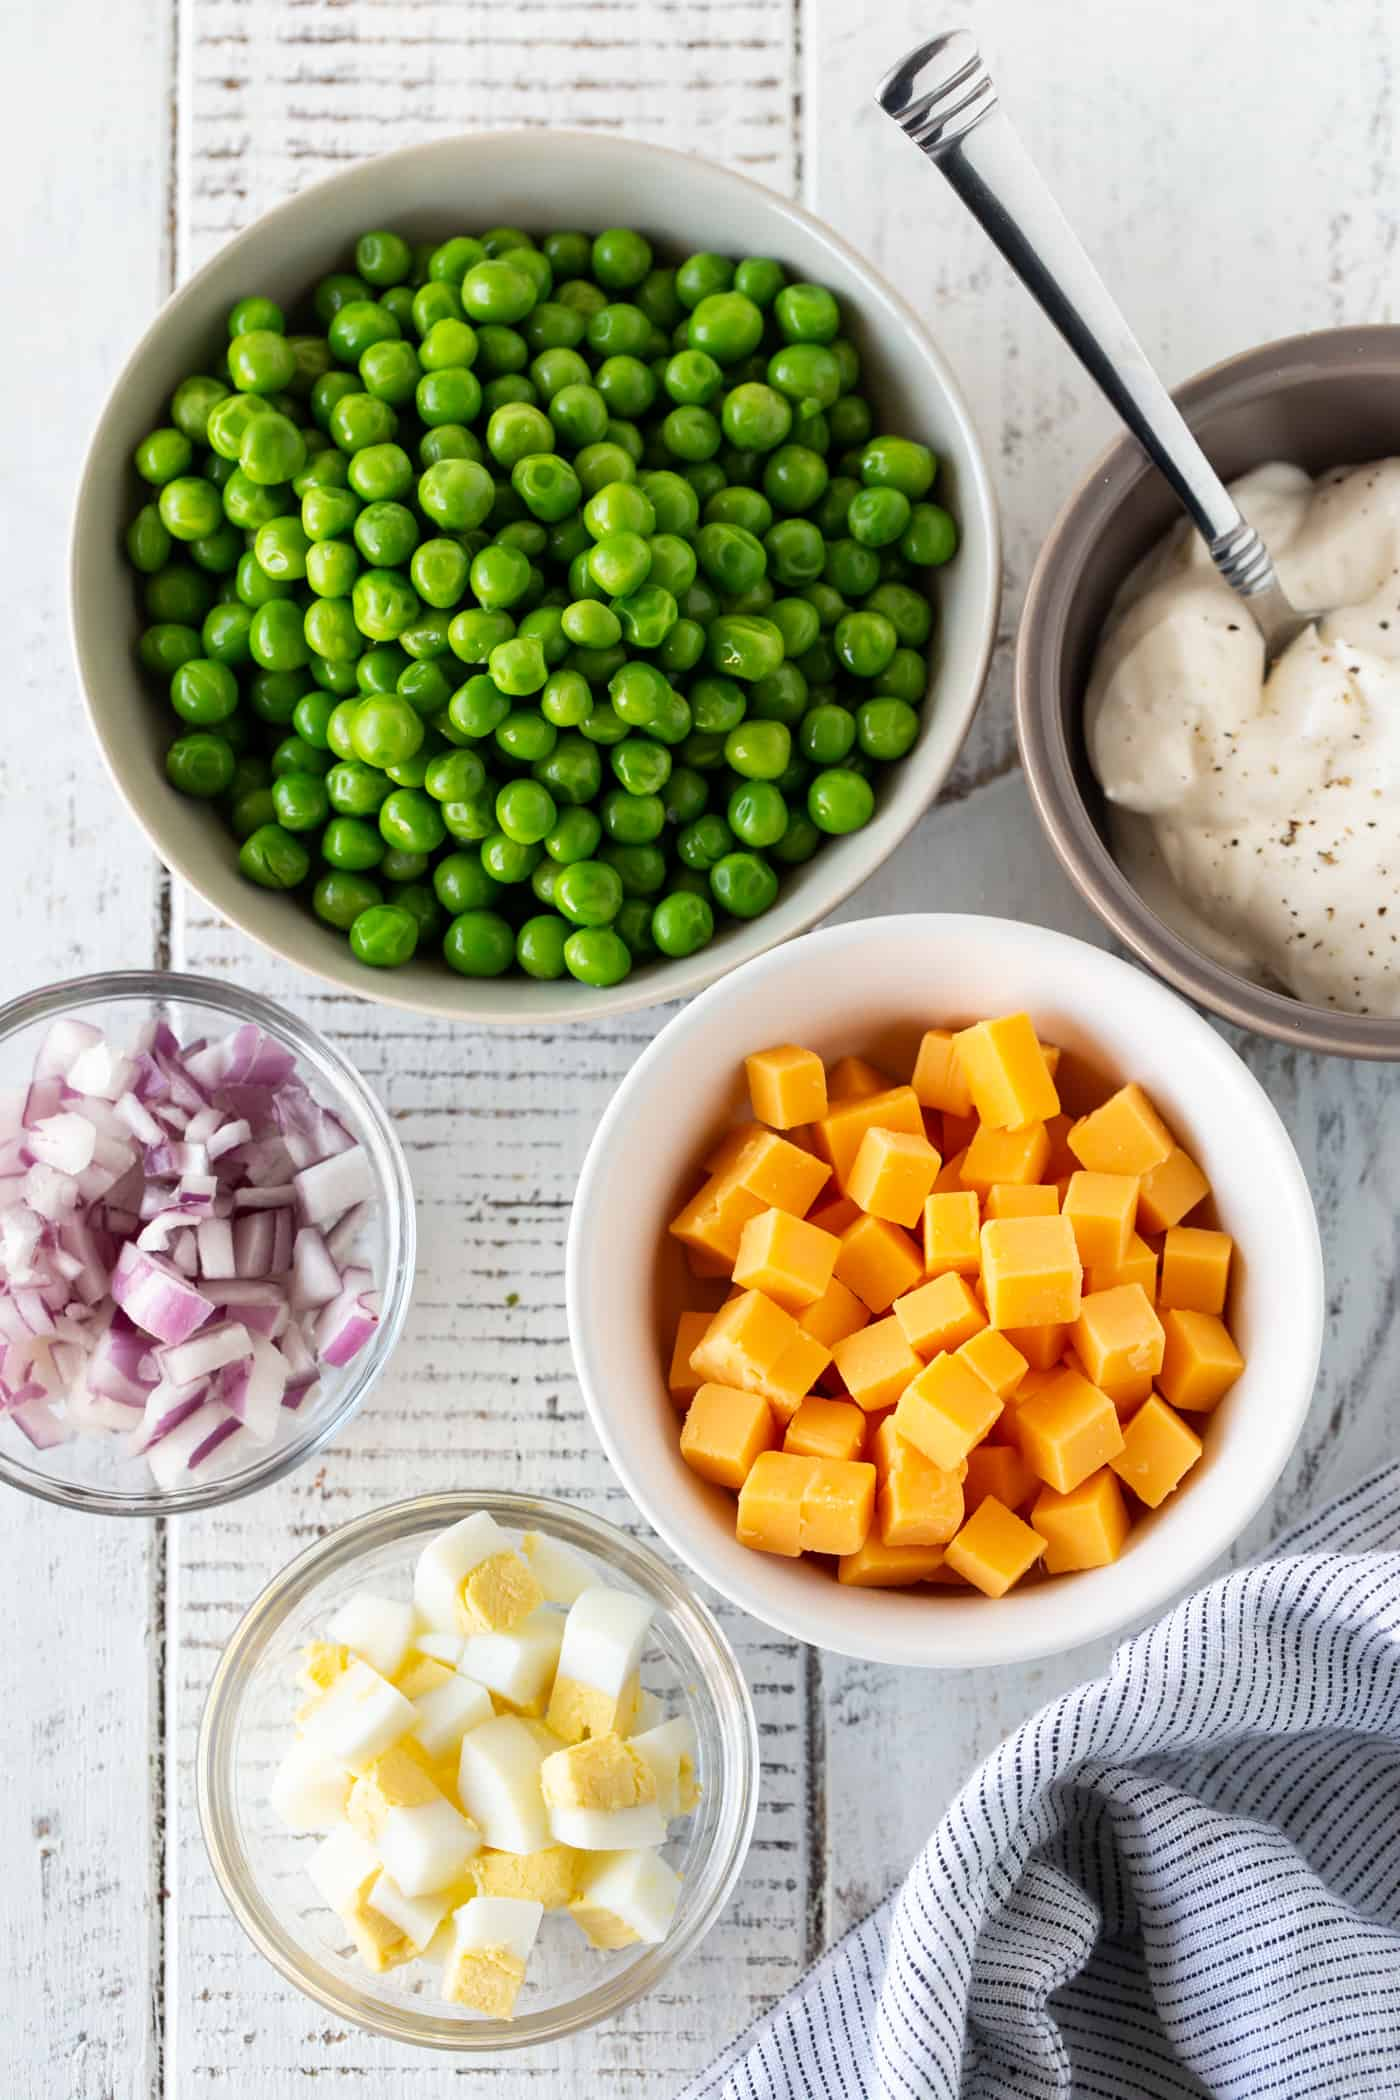 Imgredient shot of items needed for Easy pea and Cheese Salad in separate white bowls.